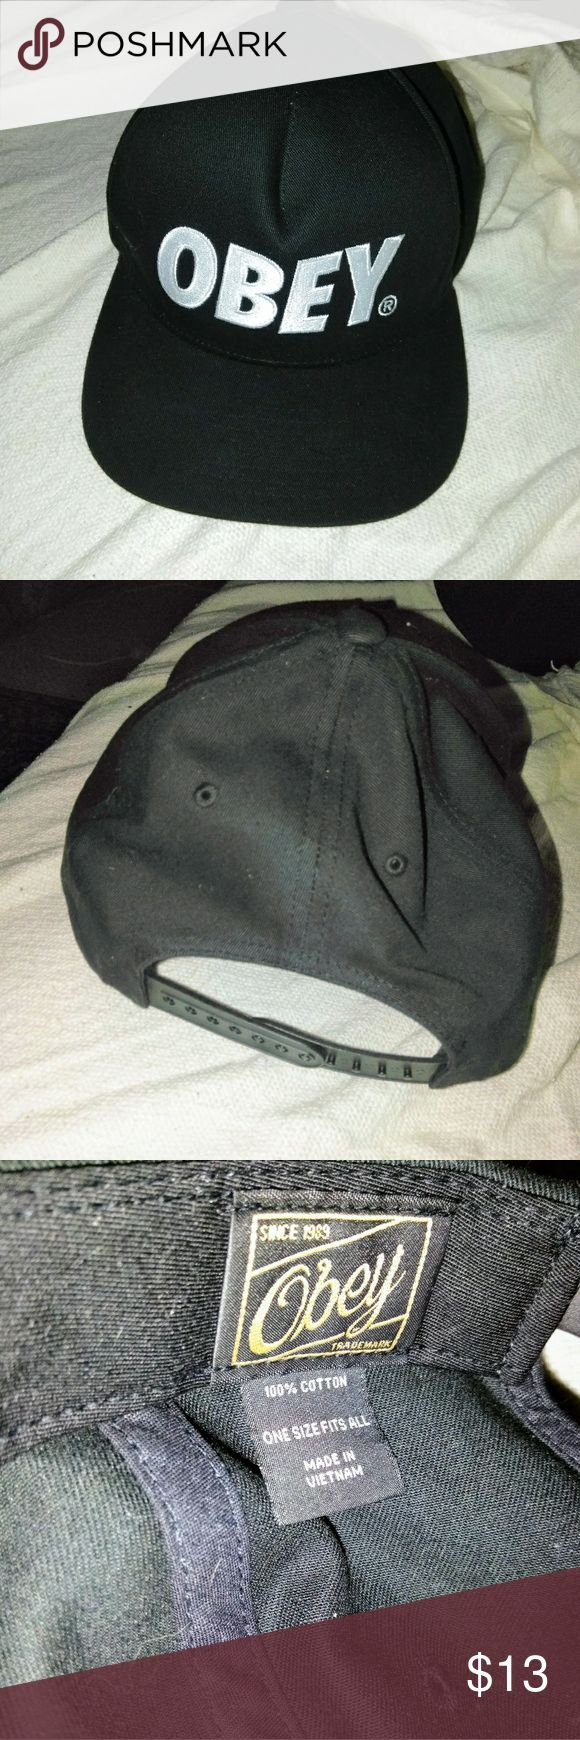 Mens Snapback Obey Cap Snapback Cap is in great condition.   100% cotton material.. Obey Accessories Hats